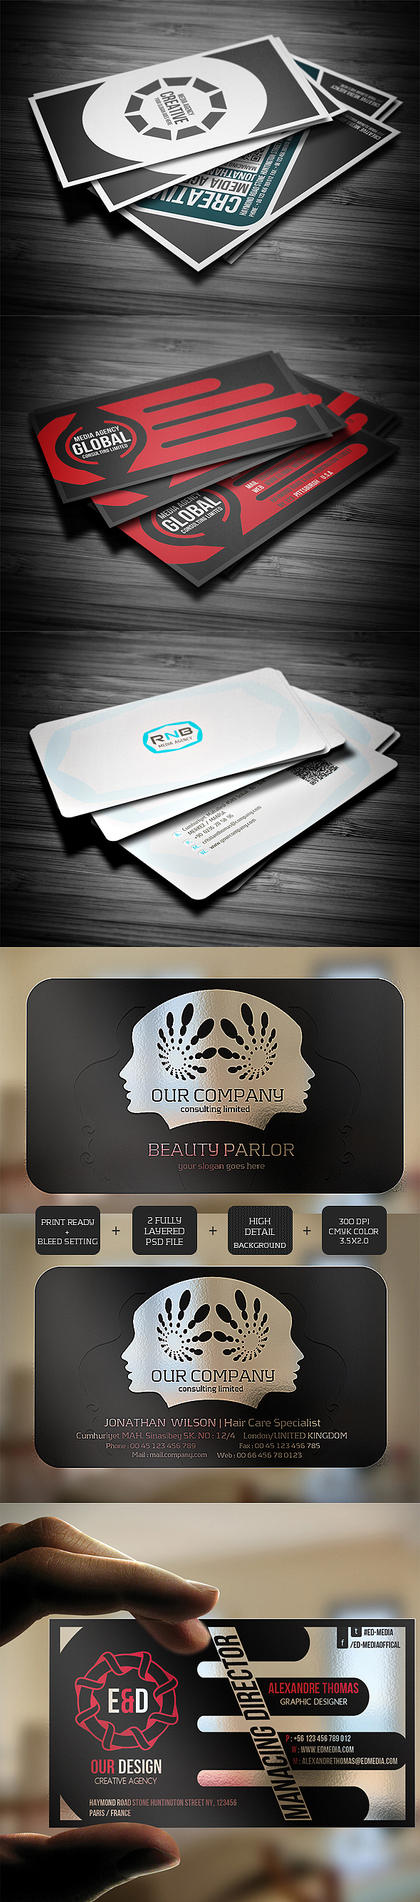 Business Card Bundle 5 in 1 by calwincalwin